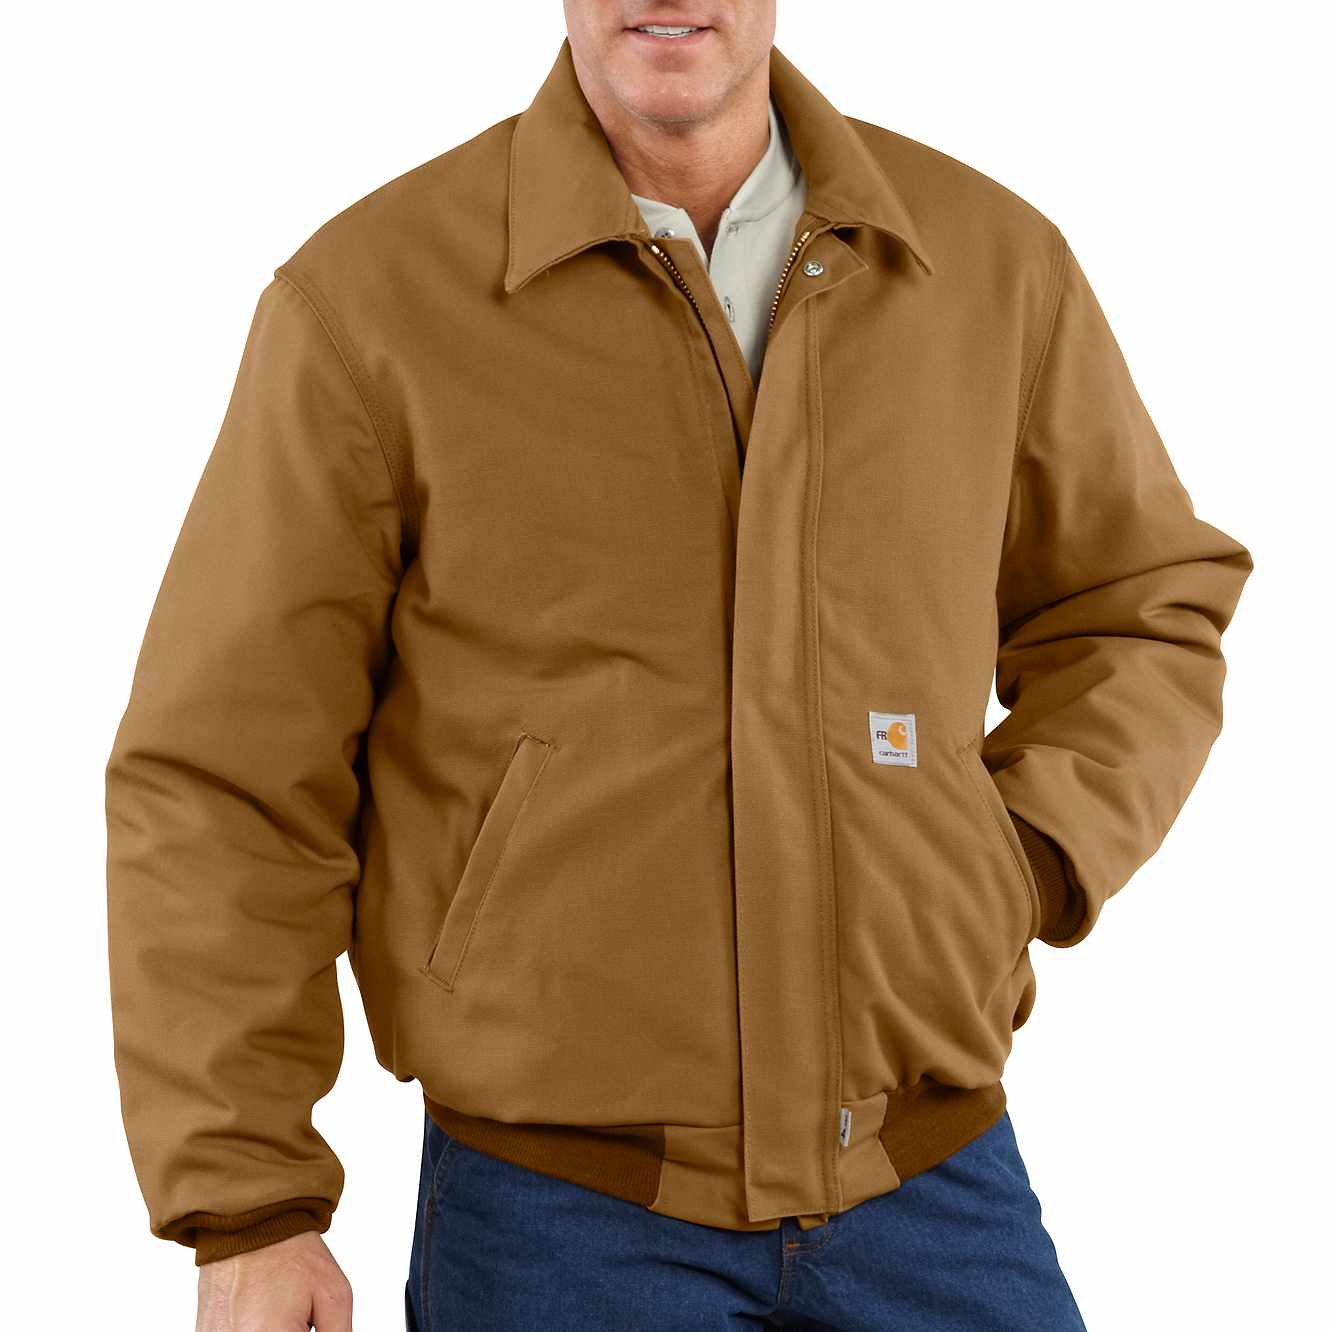 Picture of Flame-Resistant Duck Bomber Jacket/Quilt-Lined in Carhartt Brown